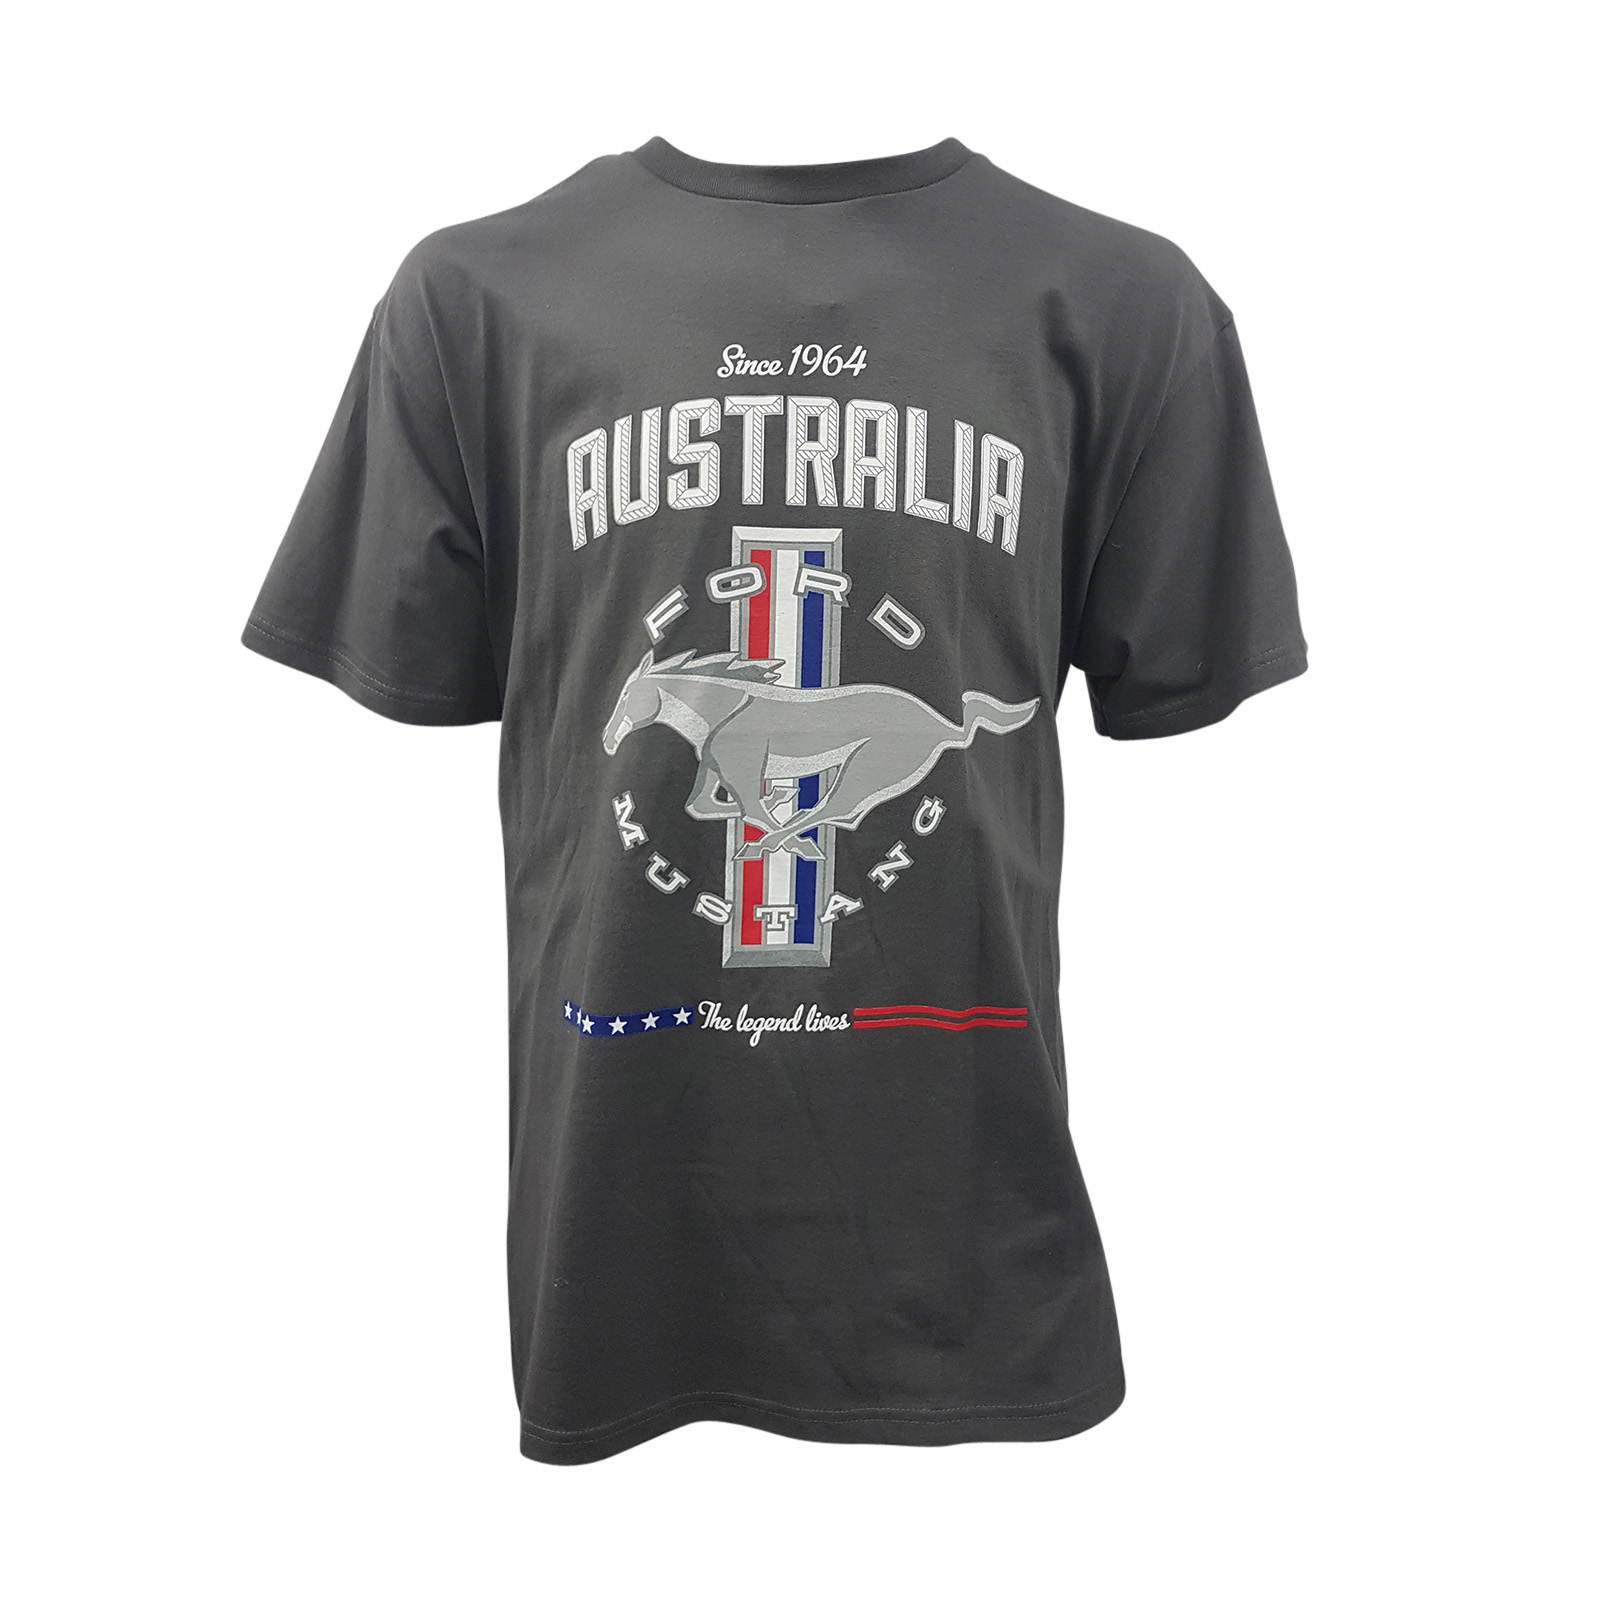 Ladies Size Ford Mustang Design T Shirt Tee Shirt Pony Tri: FORD MUSTANG AUSTRALIA T SHIRT GREY